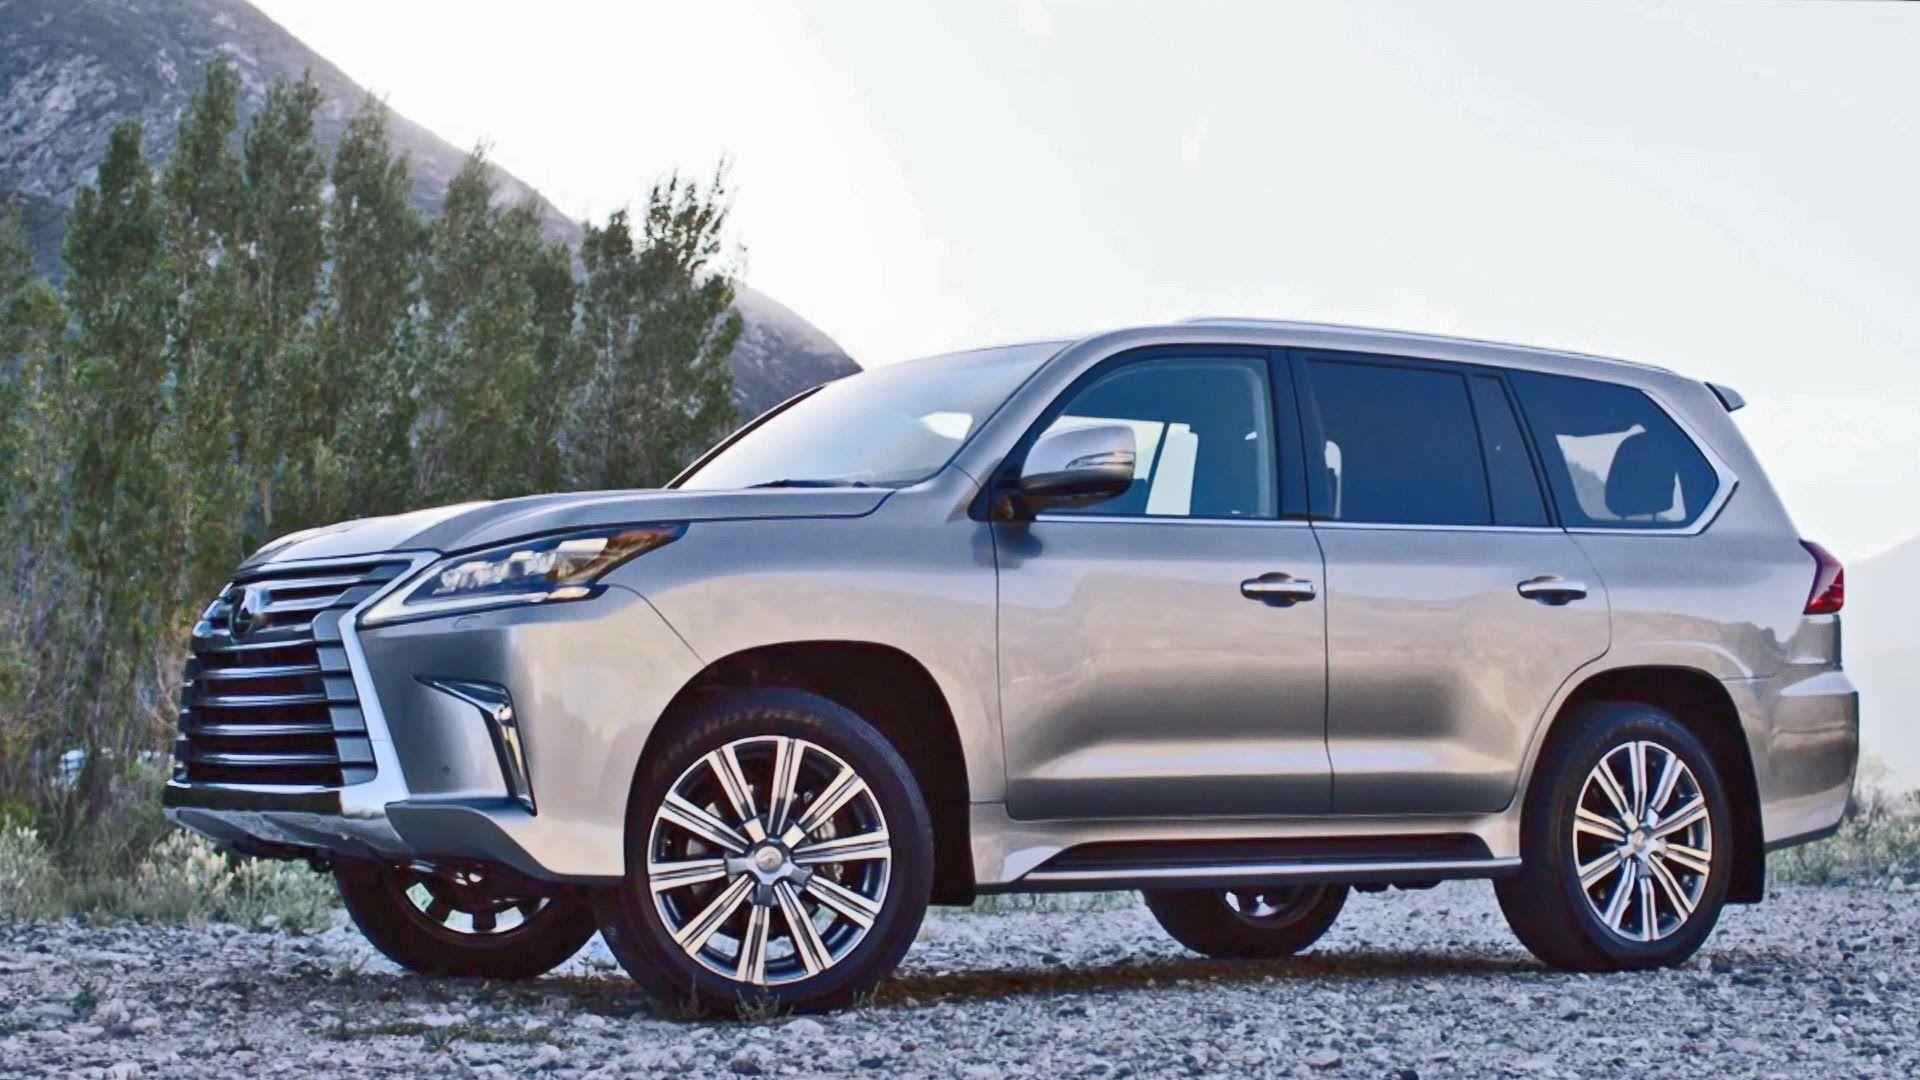 Lexus LX 570 Wallpapers